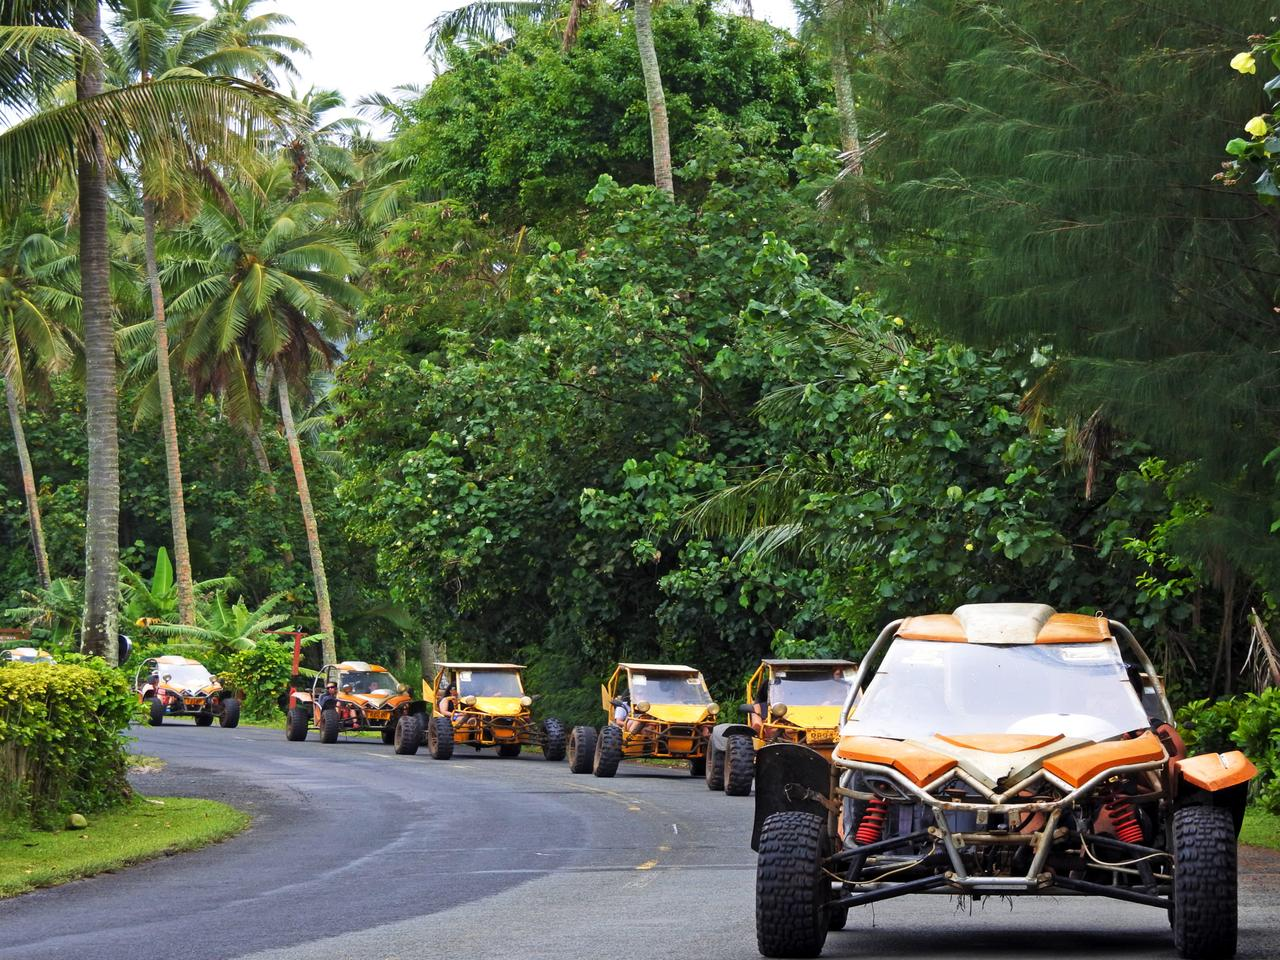 A convoy of Buggy safari adventure tour in Rarotonga, Cook Islands. Beach buggy is a recreational motor vehicle designed for use on sand dunes, beaches and off road terrain.